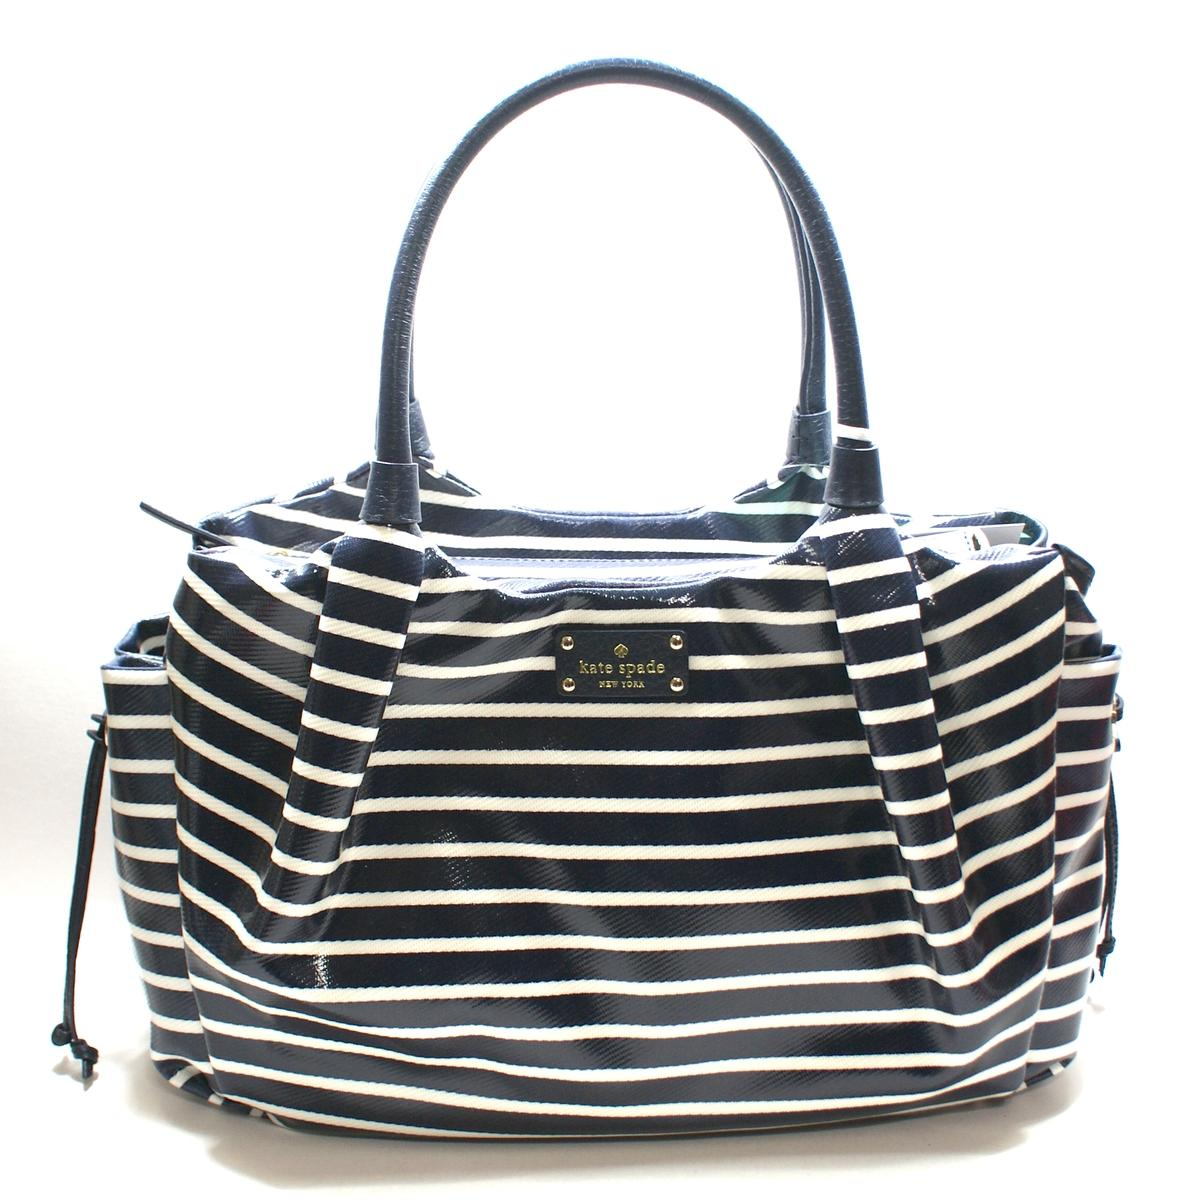 kate spade stevie baby bag southport avenue mariner shoulder bag diaper bag wkru2285 kate. Black Bedroom Furniture Sets. Home Design Ideas